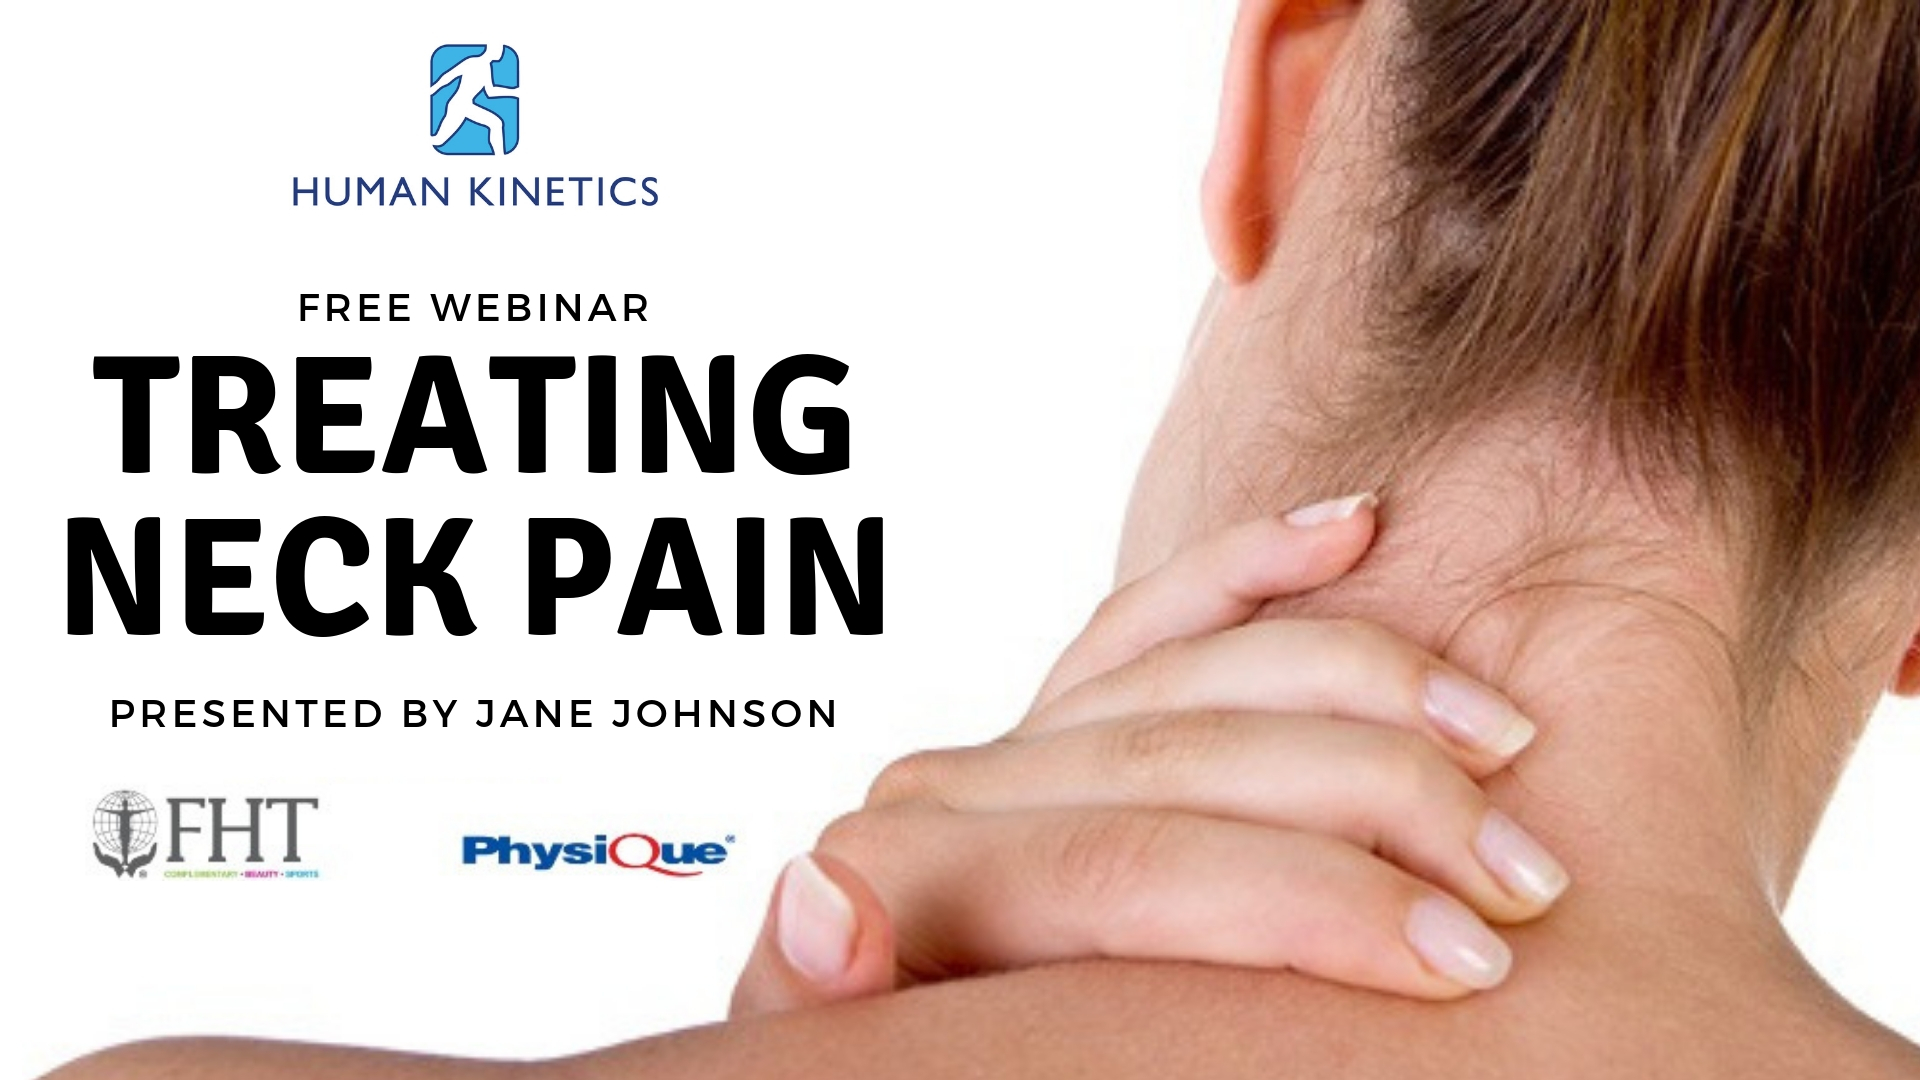 Treating neck pain webinar Jane Johnson